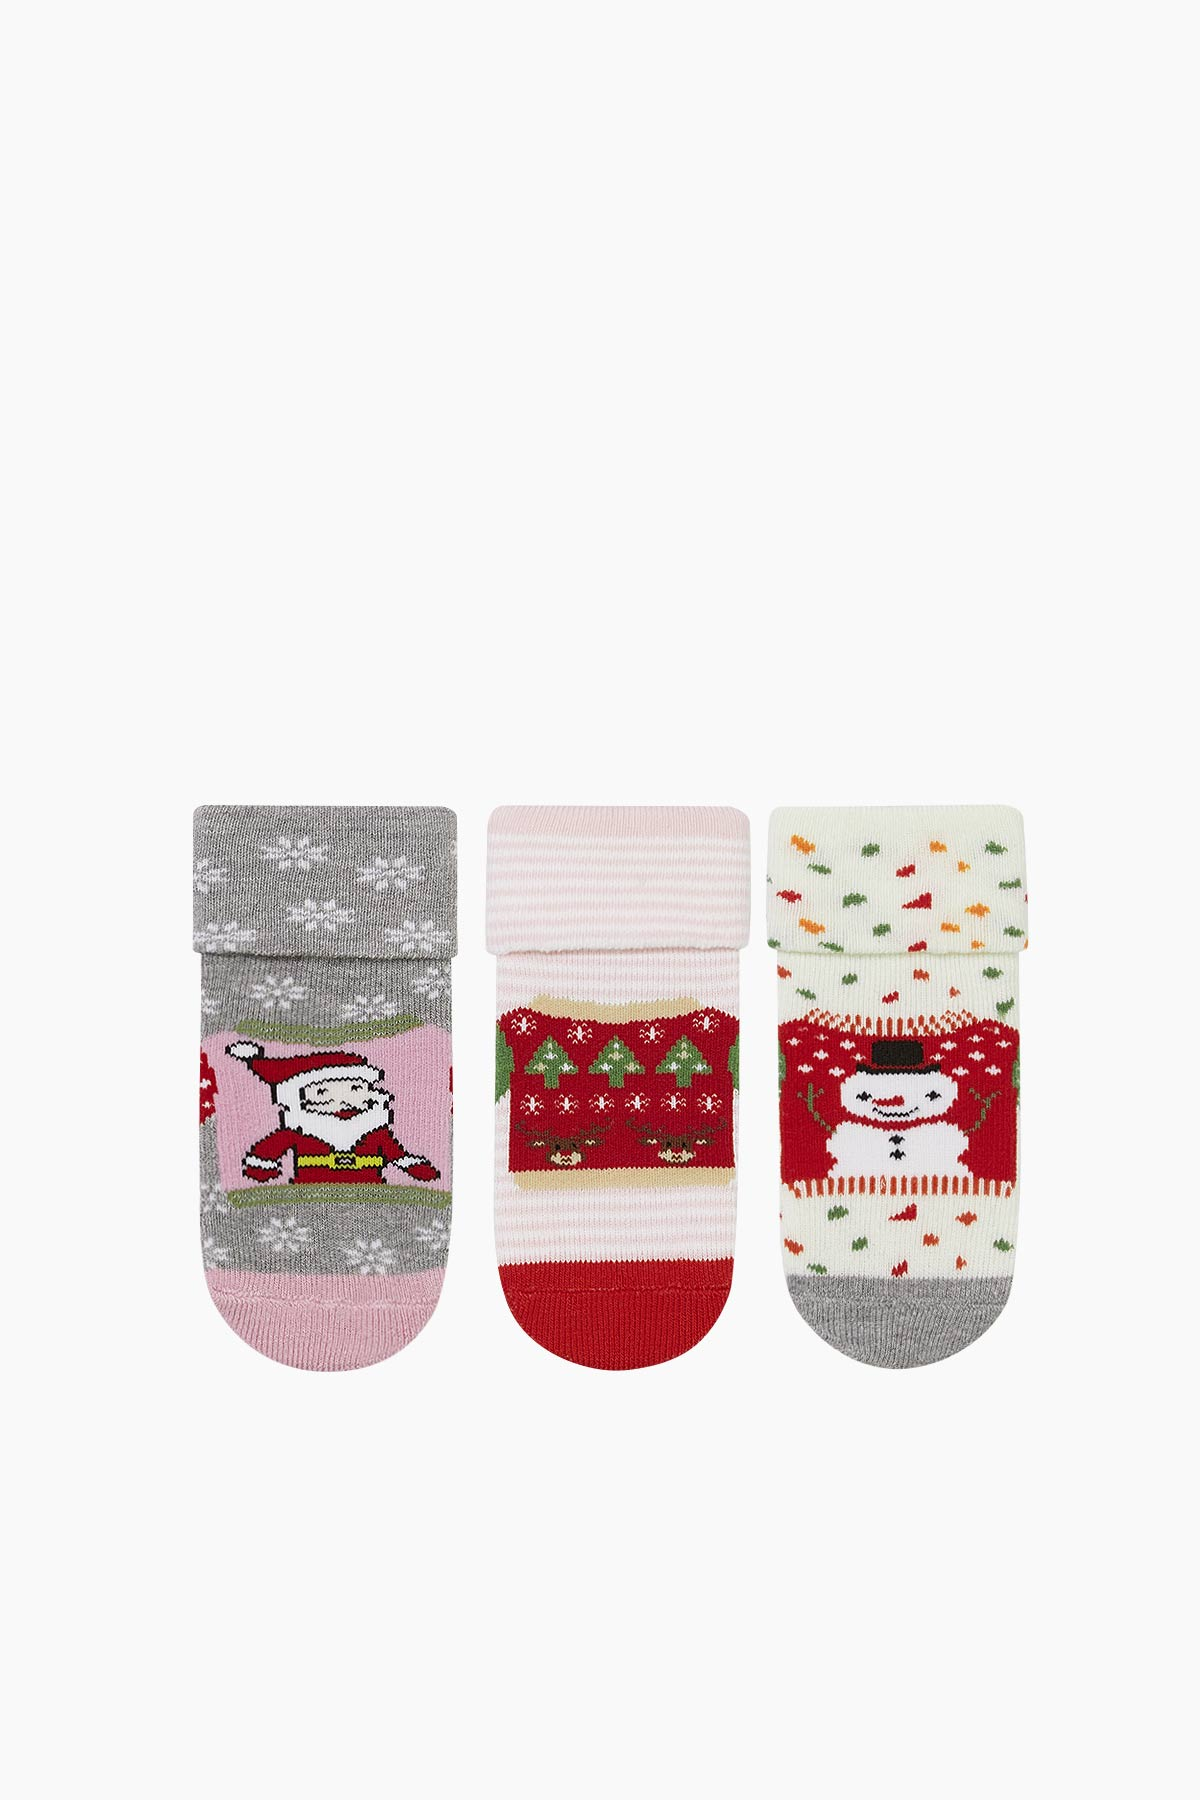 Bross - Bross 3-Piece Christmas Pattern Towel Baby Socks